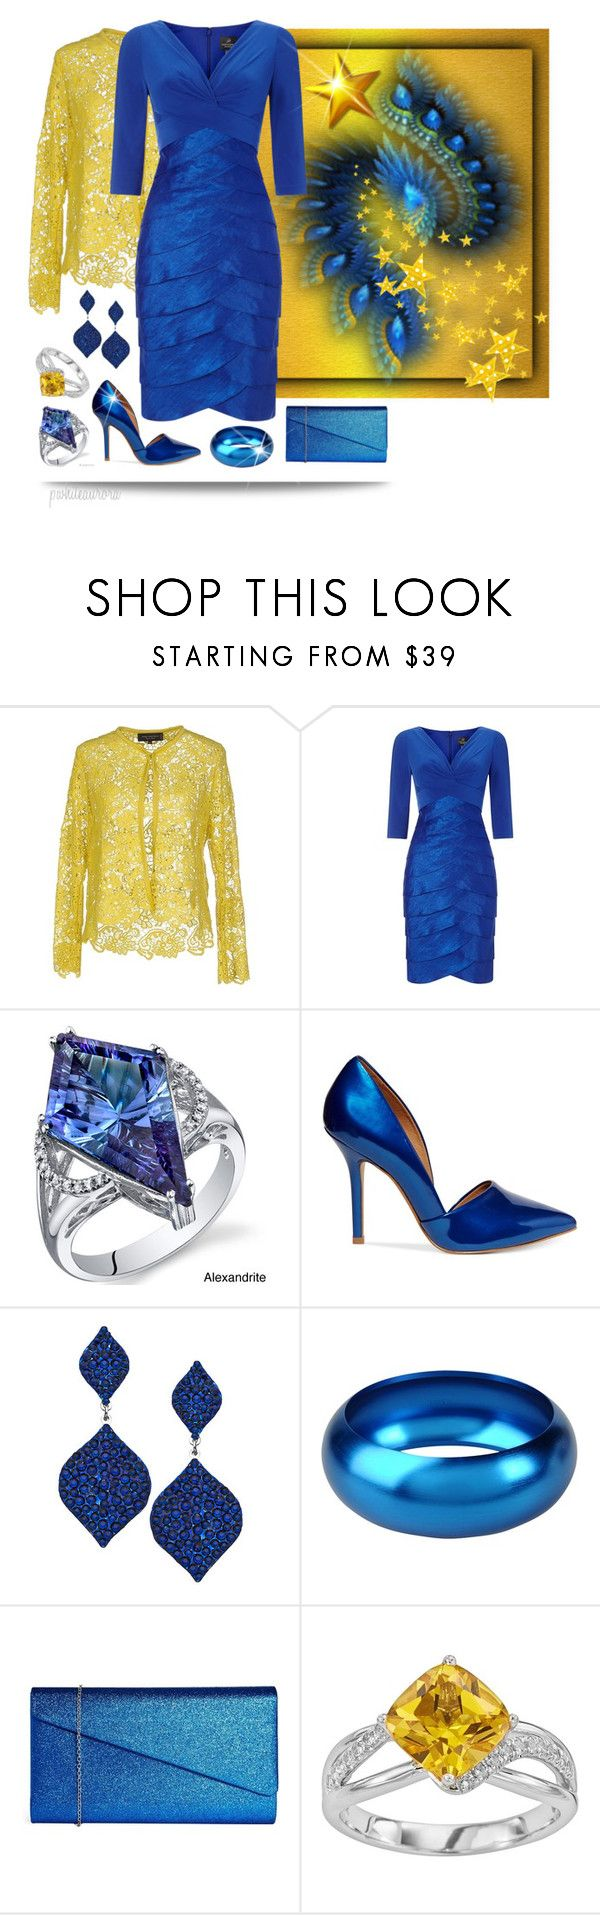 """""""Electric Blue Cocktail Dress & Goldenrod Lace Blazer"""" by pwhiteaurora ❤ liked on Polyvore featuring Anna Rachele, Adrianna Papell, Oravo, Steve Madden, Breil and Johnny Loves Rosie"""